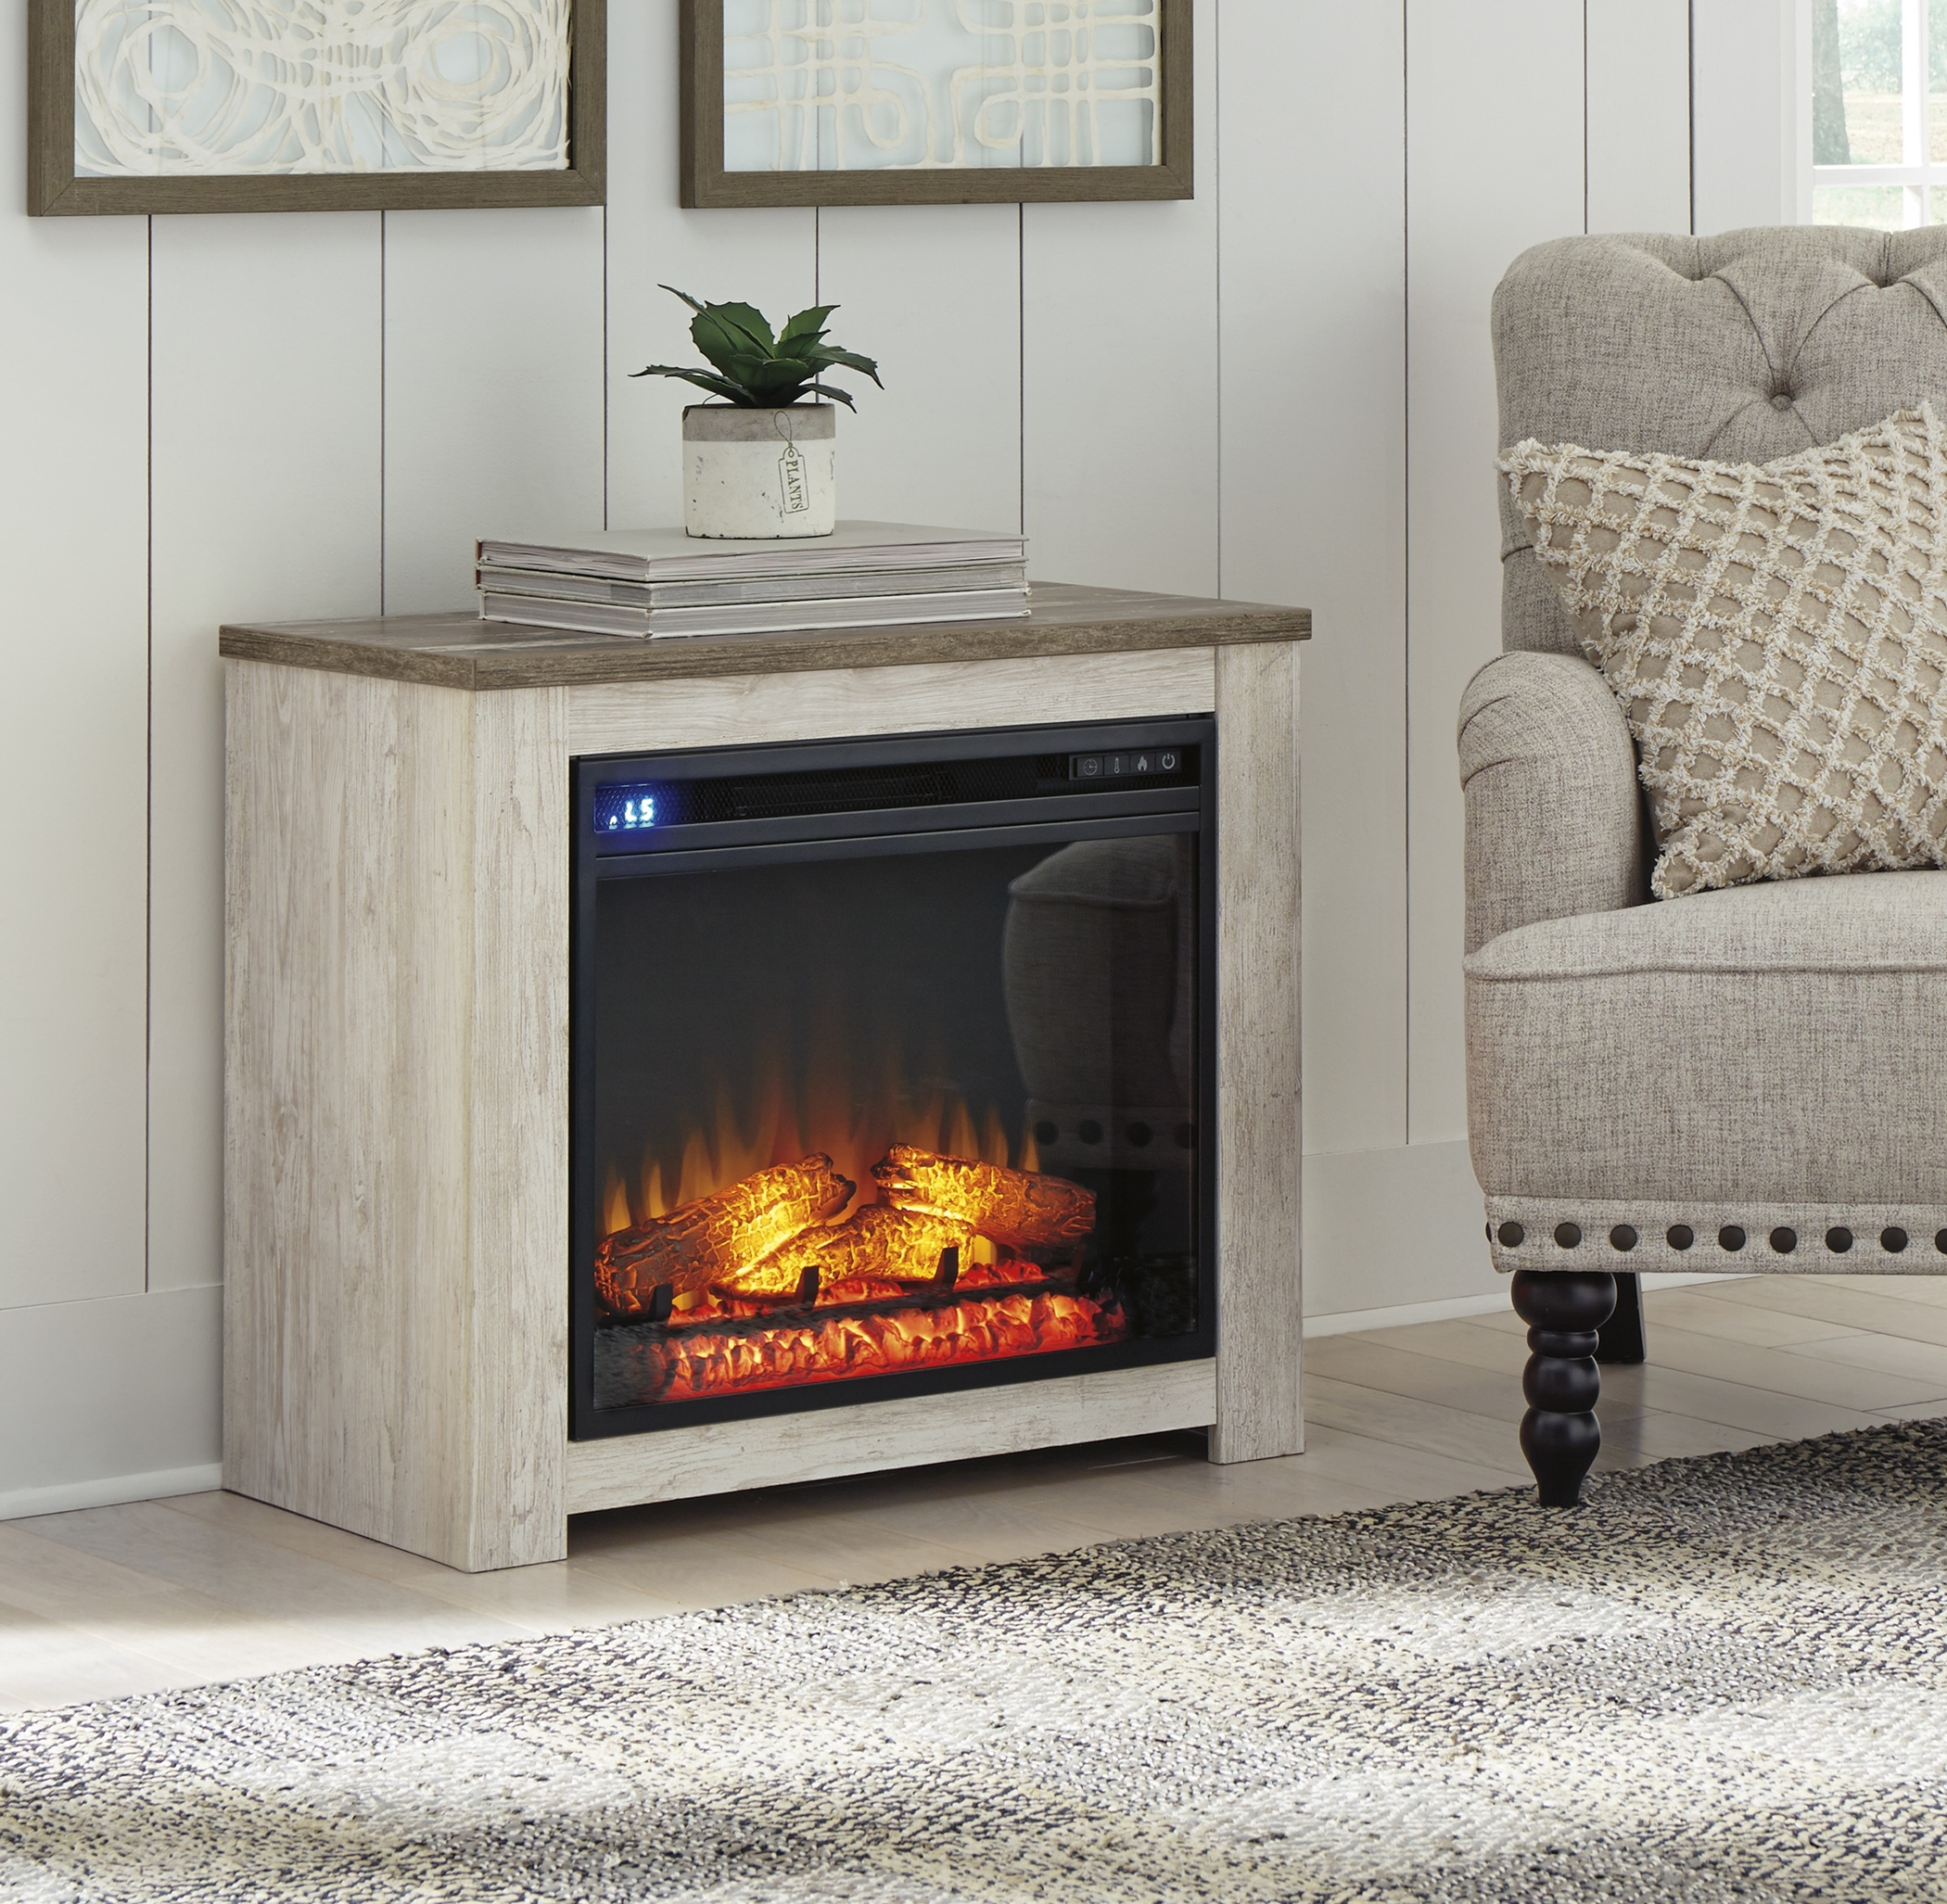 W267-368 Willowton Fireplace